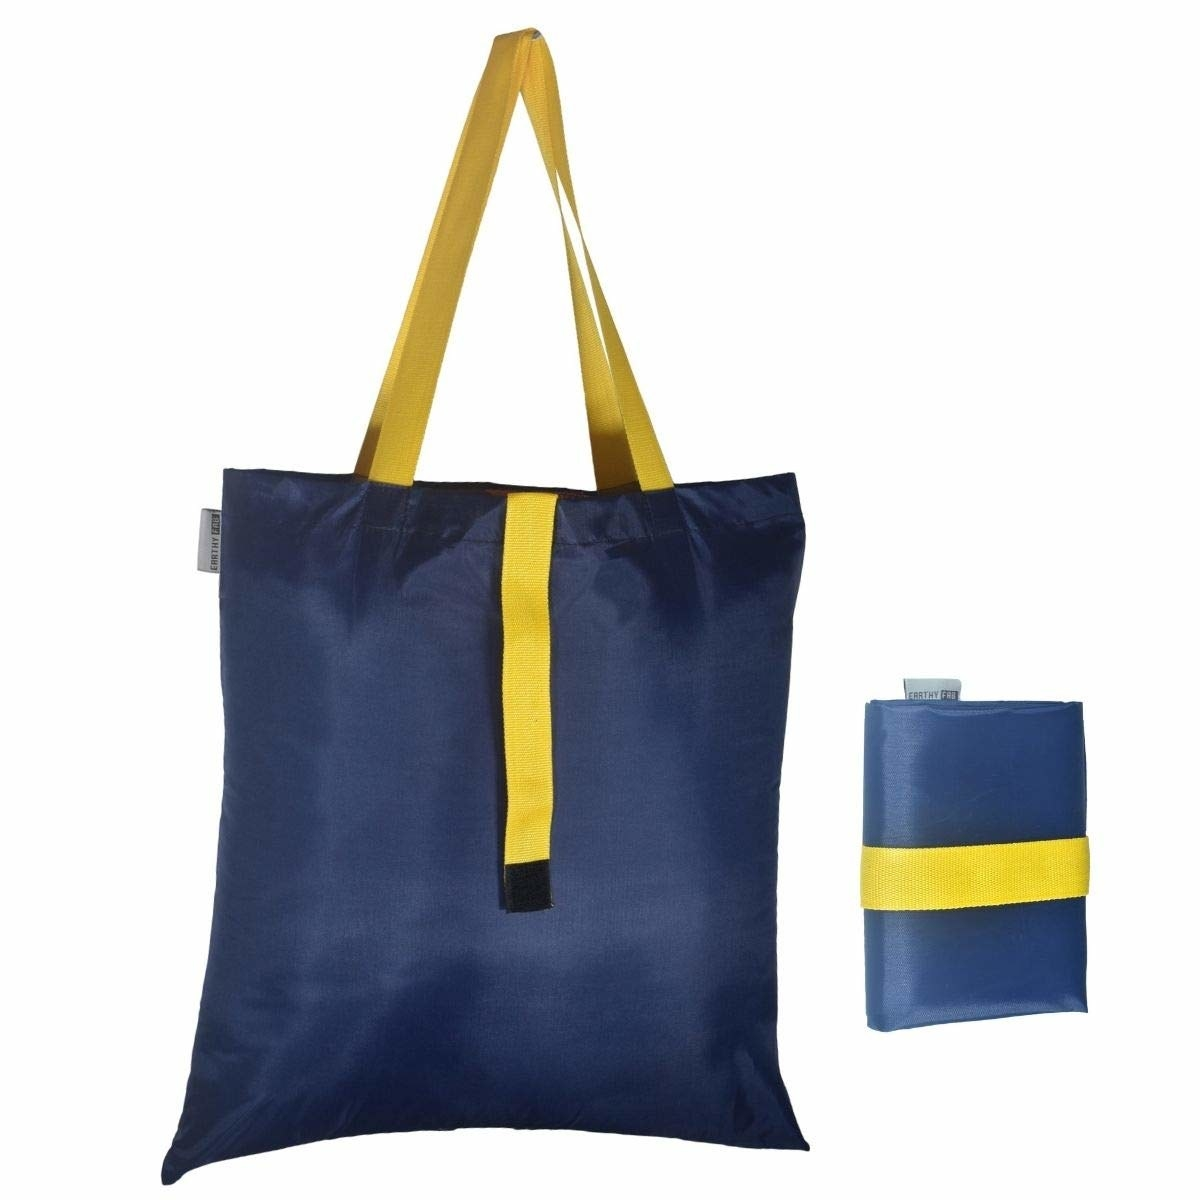 A navy blue and yellow bag pictured in its full-size and folded.